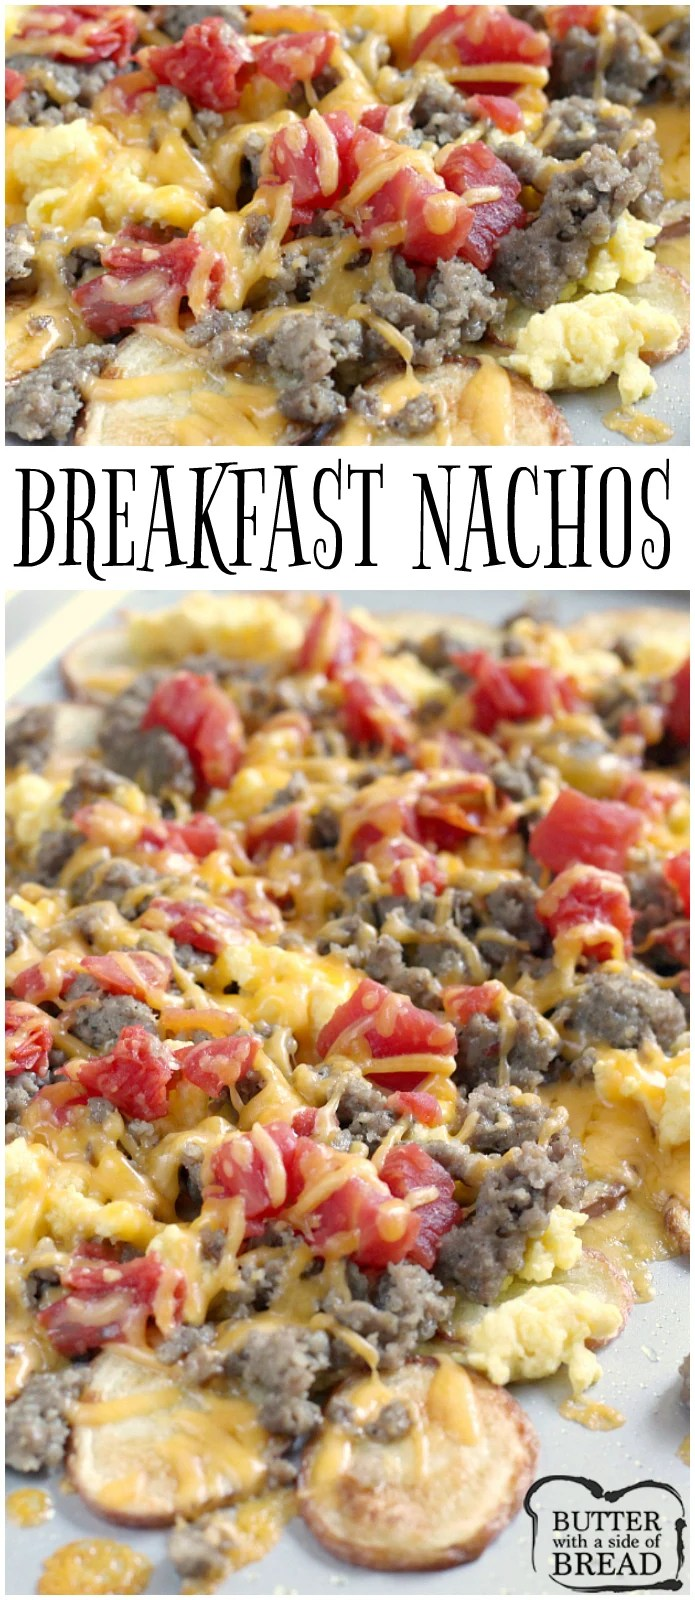 Easy Breakfast Nachos are perfect for breakfast, but also make a wonderful lunch or dinner too! Thinly sliced roasted potatoes topped with sausage, scrambled eggs, cheese and tomatoes - an easy breakfast idea that can be ready in 30 minutes!